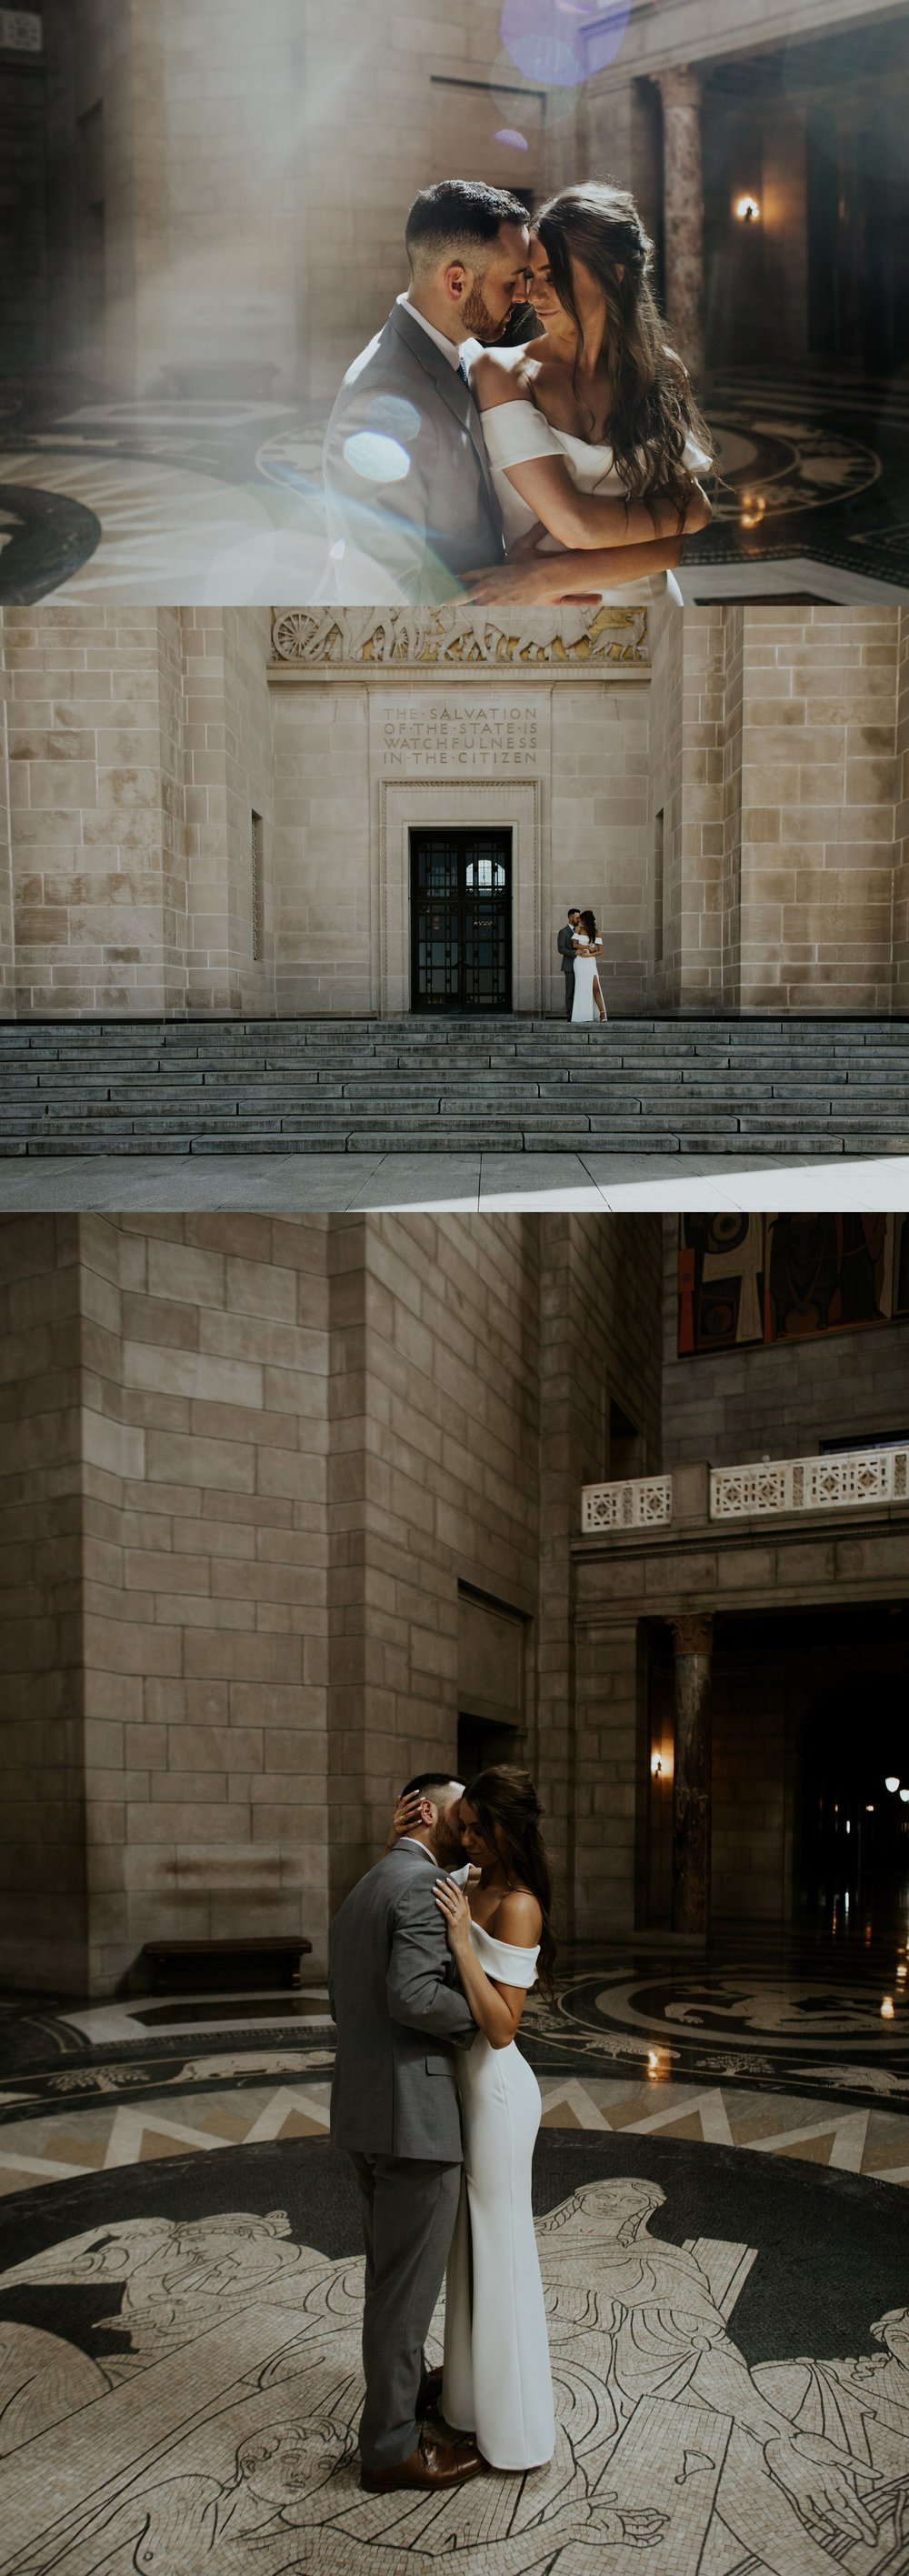 Spring Nebraska State Capitol Engagement Session - Gabby and Michael - Trin Jensen Photography_0006.jpg